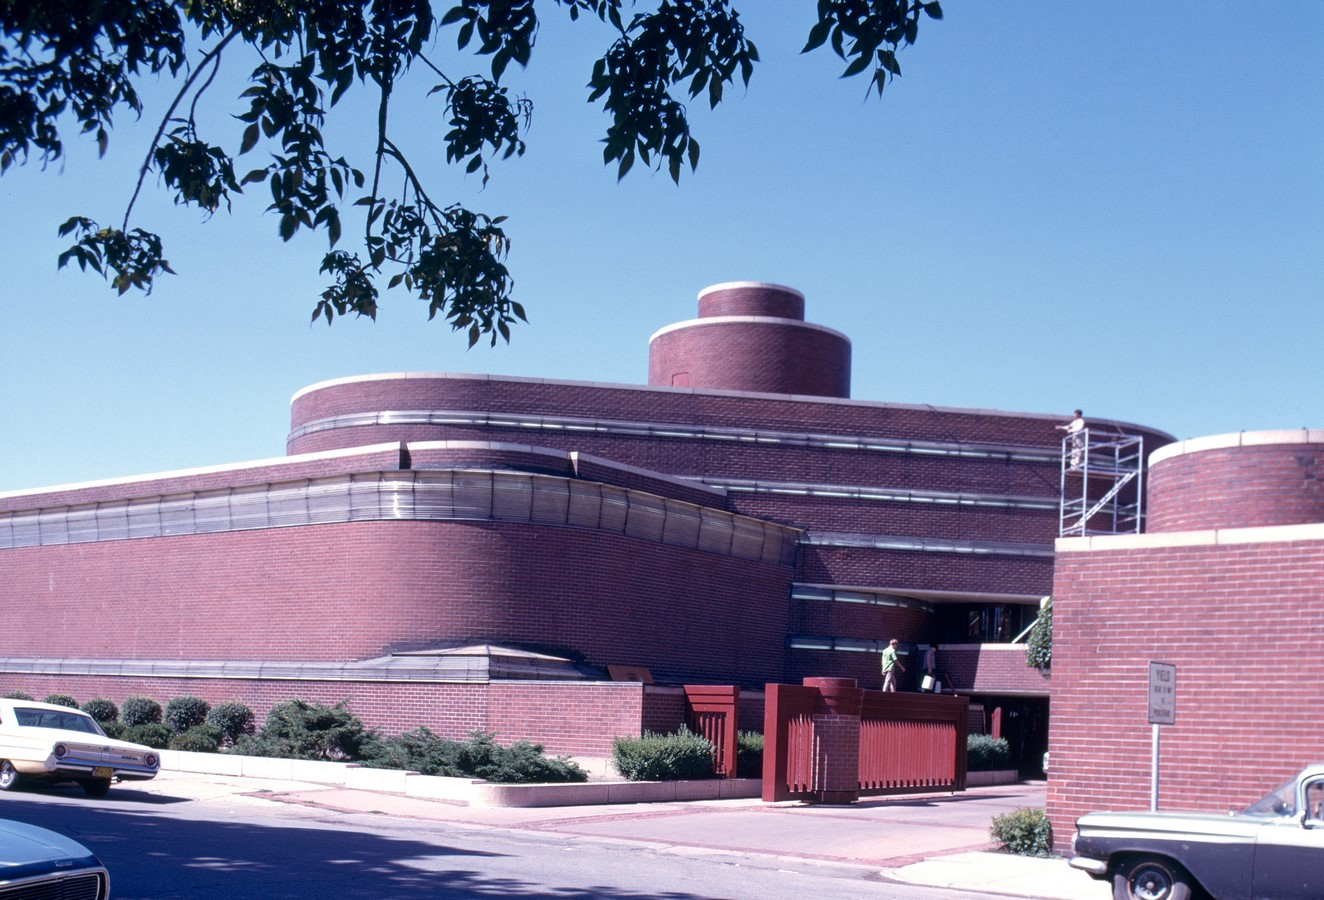 Administration building of S.C. Johnson by Frank Lloyd Wright: A space that impacted - Sheet2